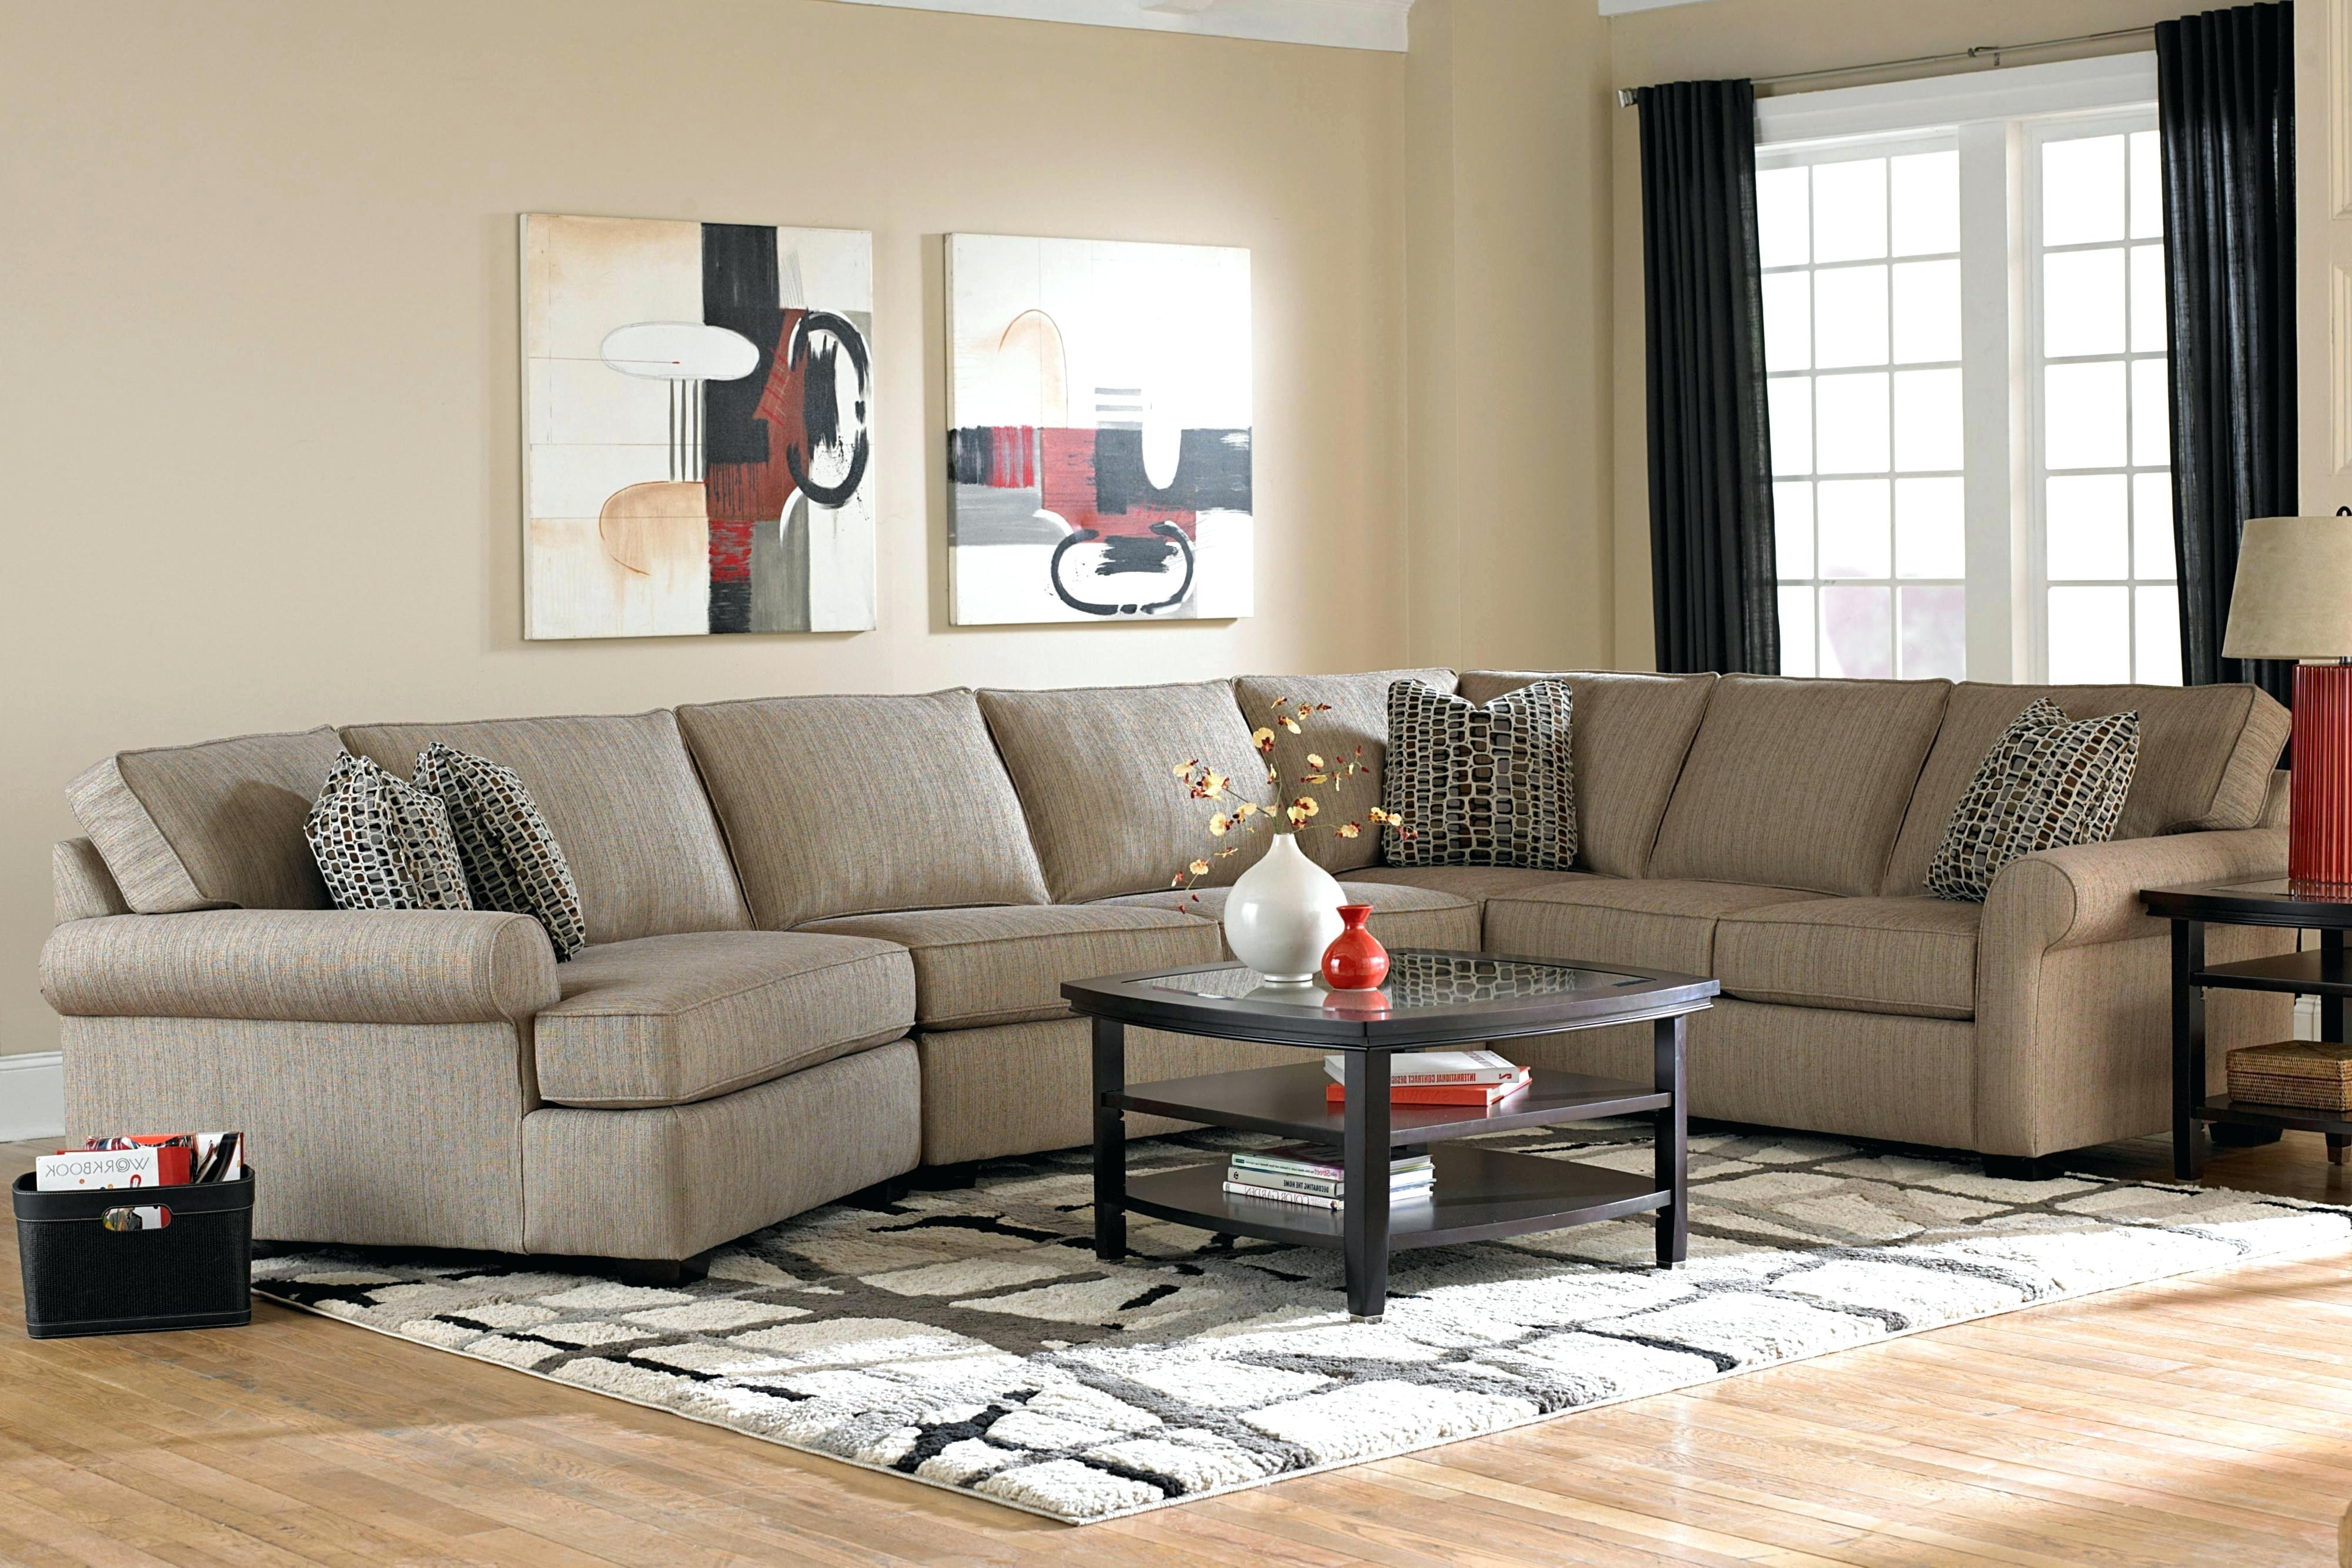 Newest Broyhill Furniture Sale 3 Sofa With All Around Wood Base – 4Parkar For Broyhill Sectional Sofas (View 17 of 20)